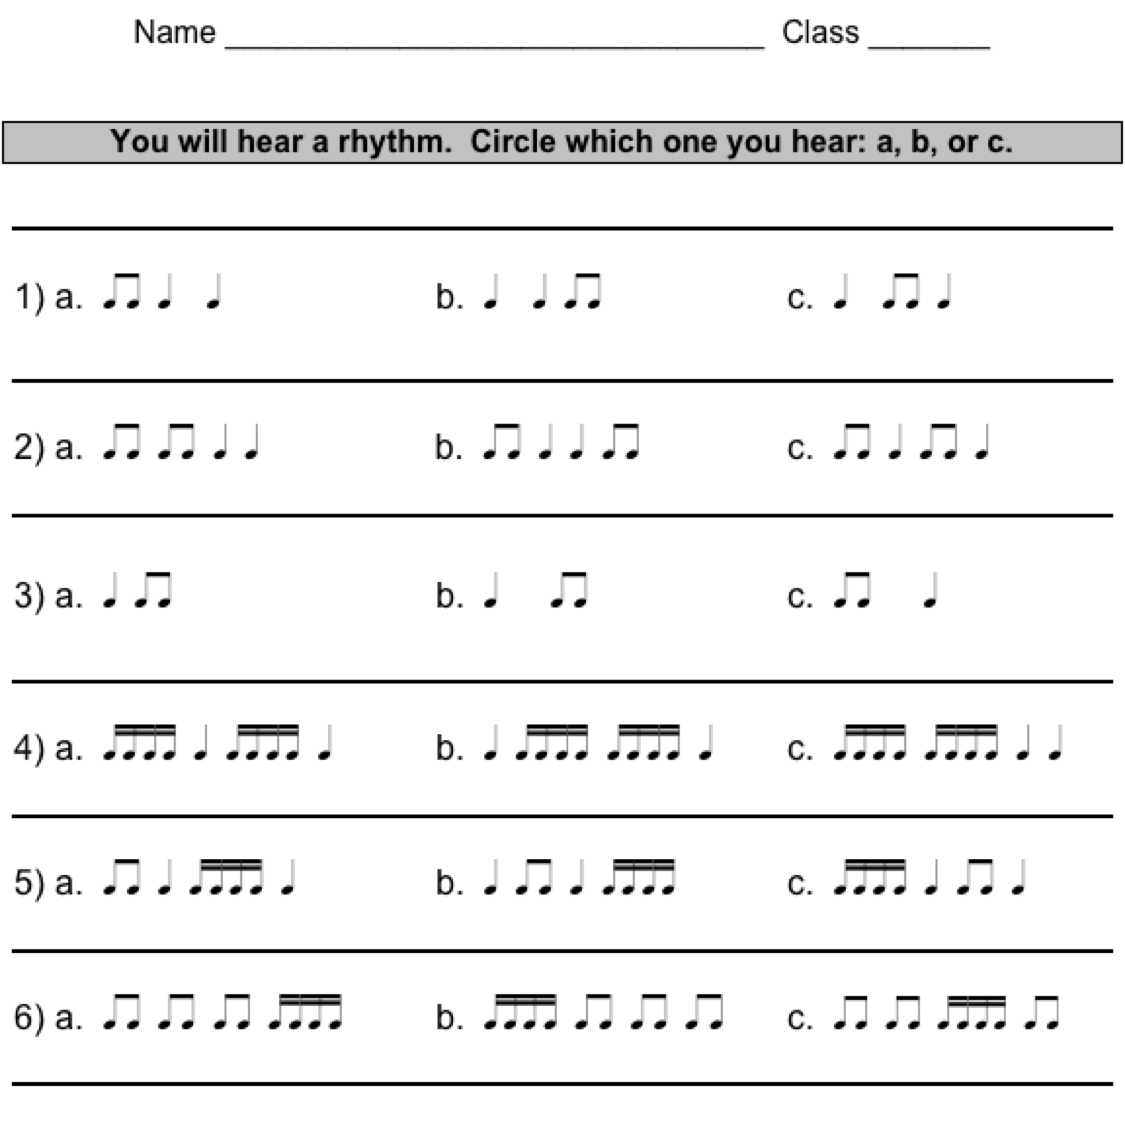 Rhythm Practice Students Write 3 Or 4 In Each Blank To Indicate How Many Beats Are In